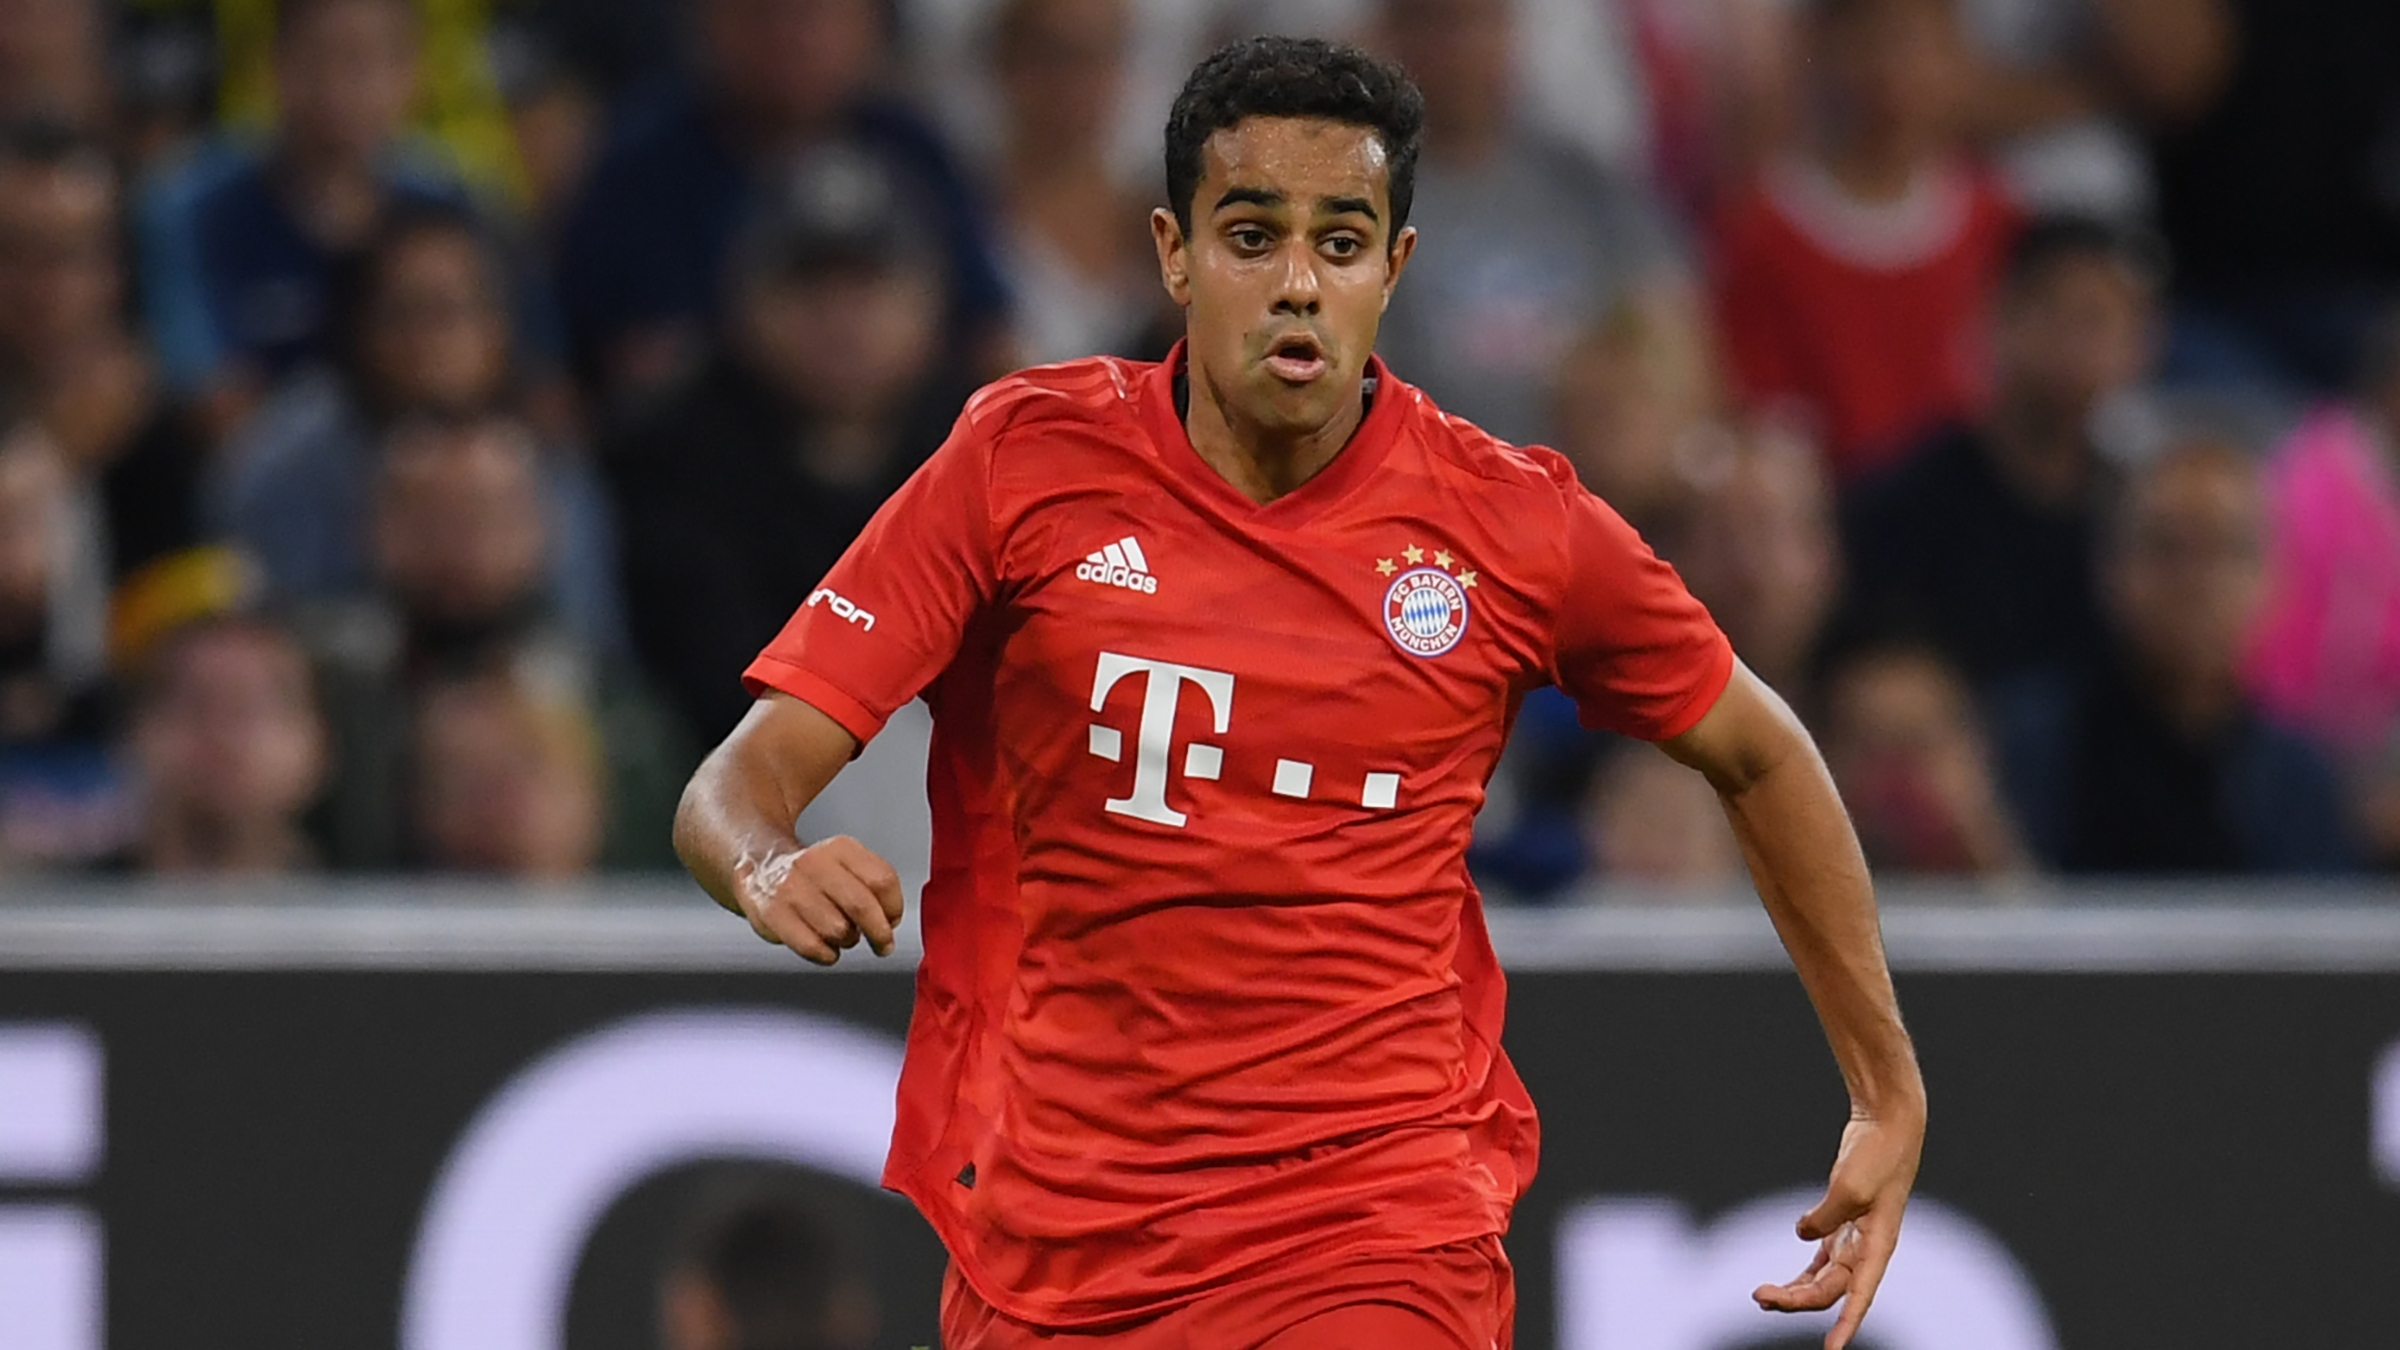 'I didn't think I'd find my feet so quickly' - Sarpreet Singh surprised at his Bayern Munich rise